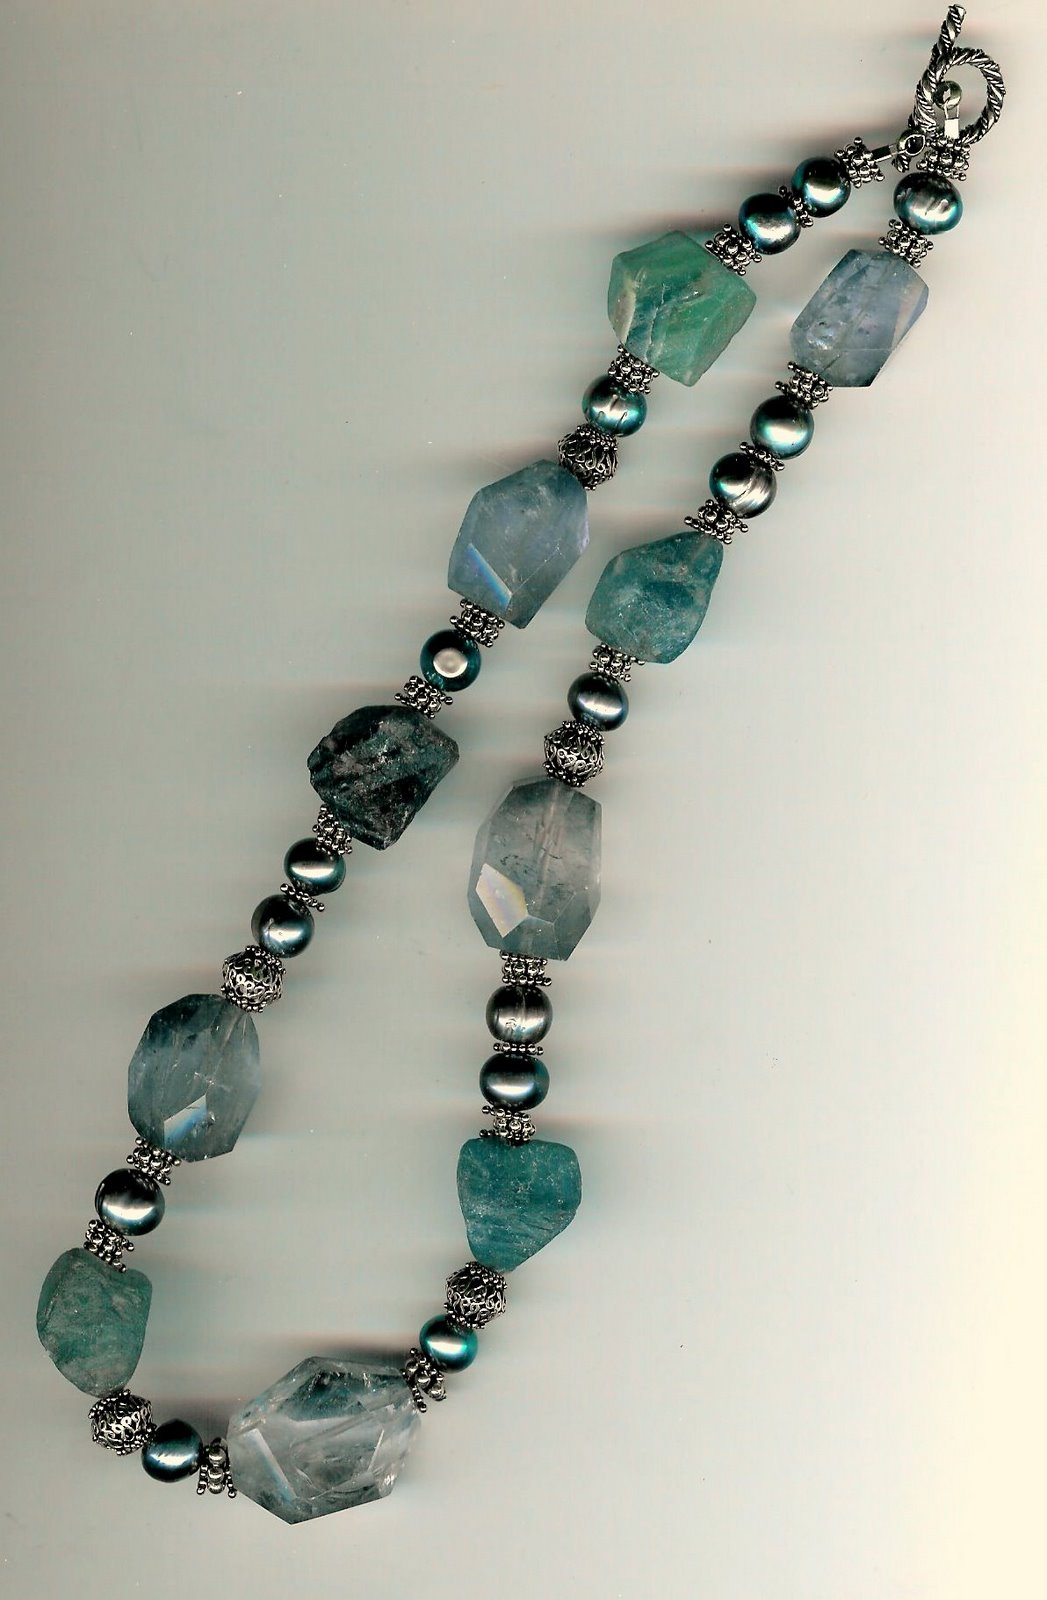 103.  Rugged and cut Fluorite,  Freshwater pearls with Bali Sterling Silver